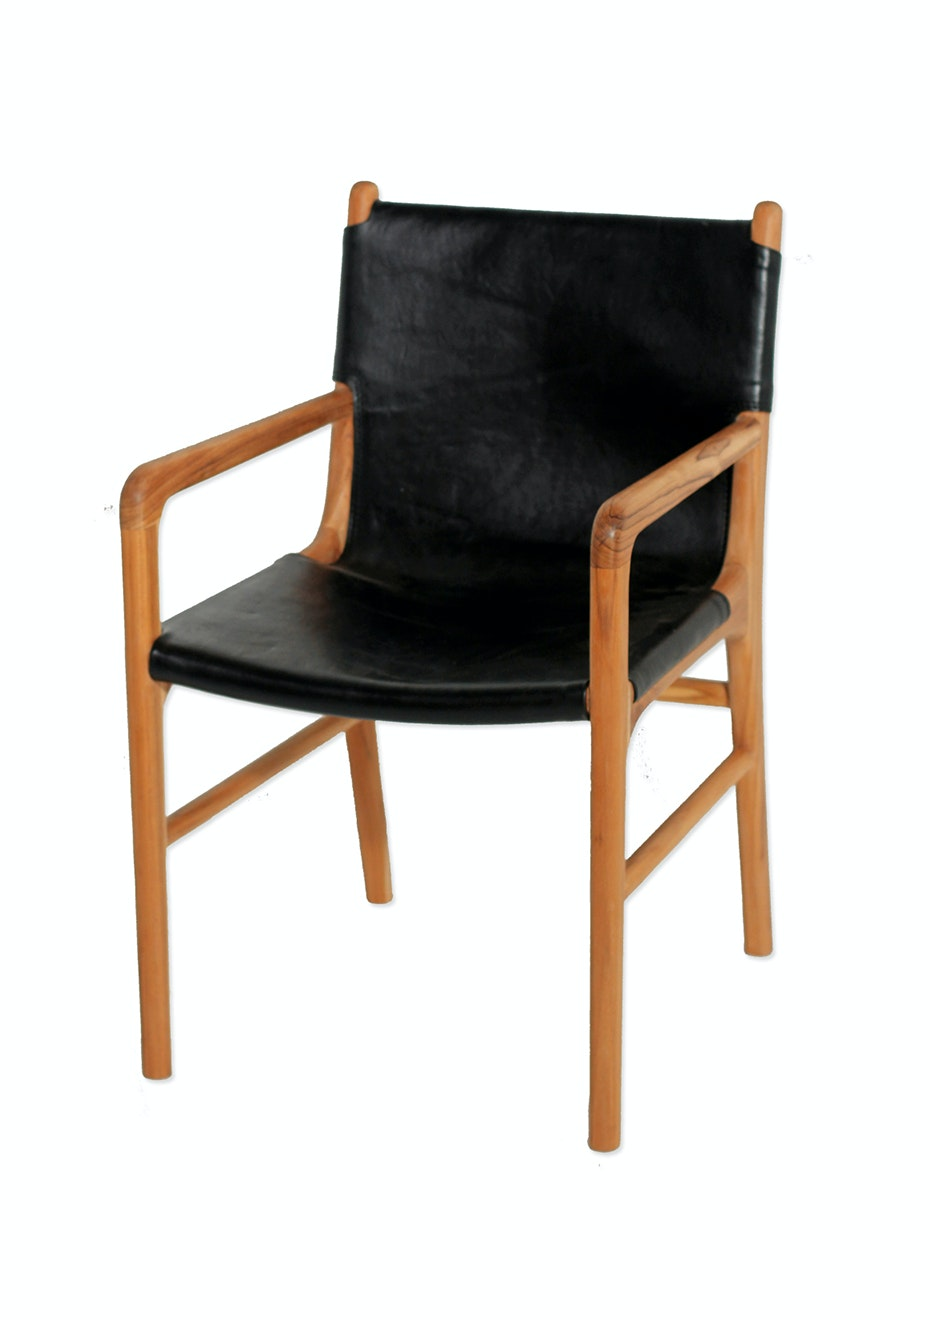 wood and leather chair. Kusuma Teak \u0026 Leather Chair With Arms - Black On Trend Furniture More Onceit Wood And